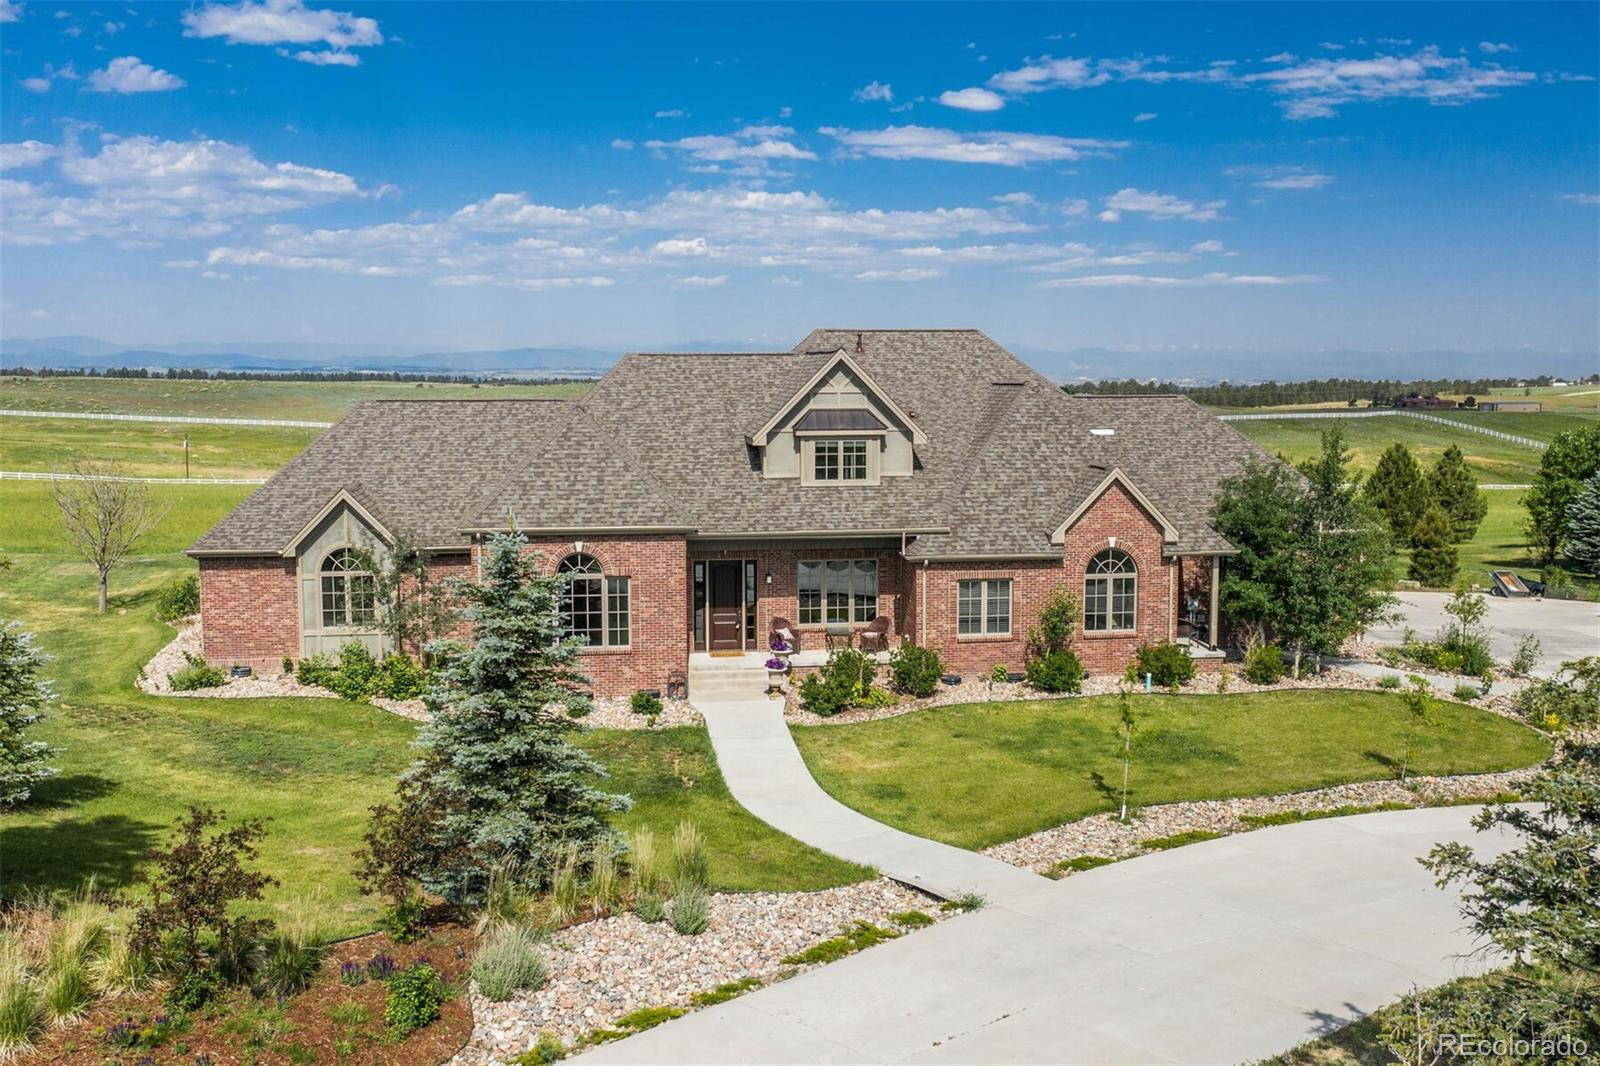 This custom estate sits high atop a hill on 38 acres and boasts spectacular, sweeping views of the entire Front Range. The interior is rich with custom finishes and quality craftsmanship. Gorgeous walnut hardwood floors, crown moldings, and upgraded tile work is found throughout the home using the finest materials.  The 2-story great room welcomes you where expansive windows perfectly frame breathtaking views.  The state of the art kitchen features a huge center islands with soapstone counters, custom knotty Cherry cabinetry, and professional grade, stainless appliances.  The open concept great room, kitchen and breakfast nook leads to the backyard!  The tranquility of the private main floor master retreat and spa like master bath is a nice escape!  There is a main level guest or nanny quarters with separate living space, bedroom, full bath and exterior entrance. Upstairs features a loft open to the great room and three large bedrooms with a full bath. The Guest House is within walkiing distance of the main home and boasts 3 additional bedrooms, plus custom kitchen, living room, 2 baths and another 3 car garage.  The Guest House is perfect for inlaws, a caretaker or possible rental property.  A rare find, the home is zoned for horses & outbuildings. The 1200 sq. ft, barn, shed and chicken coop make this the perfect property, all with a new hail resistant roof.  There is plenty of space to build horse facilities, a corral, or even a pool...the options are limitless!!!  Close in horse property with easy access to Parker, DTC, Park Meadows plus Douglas County Schools!  Views, views, views!